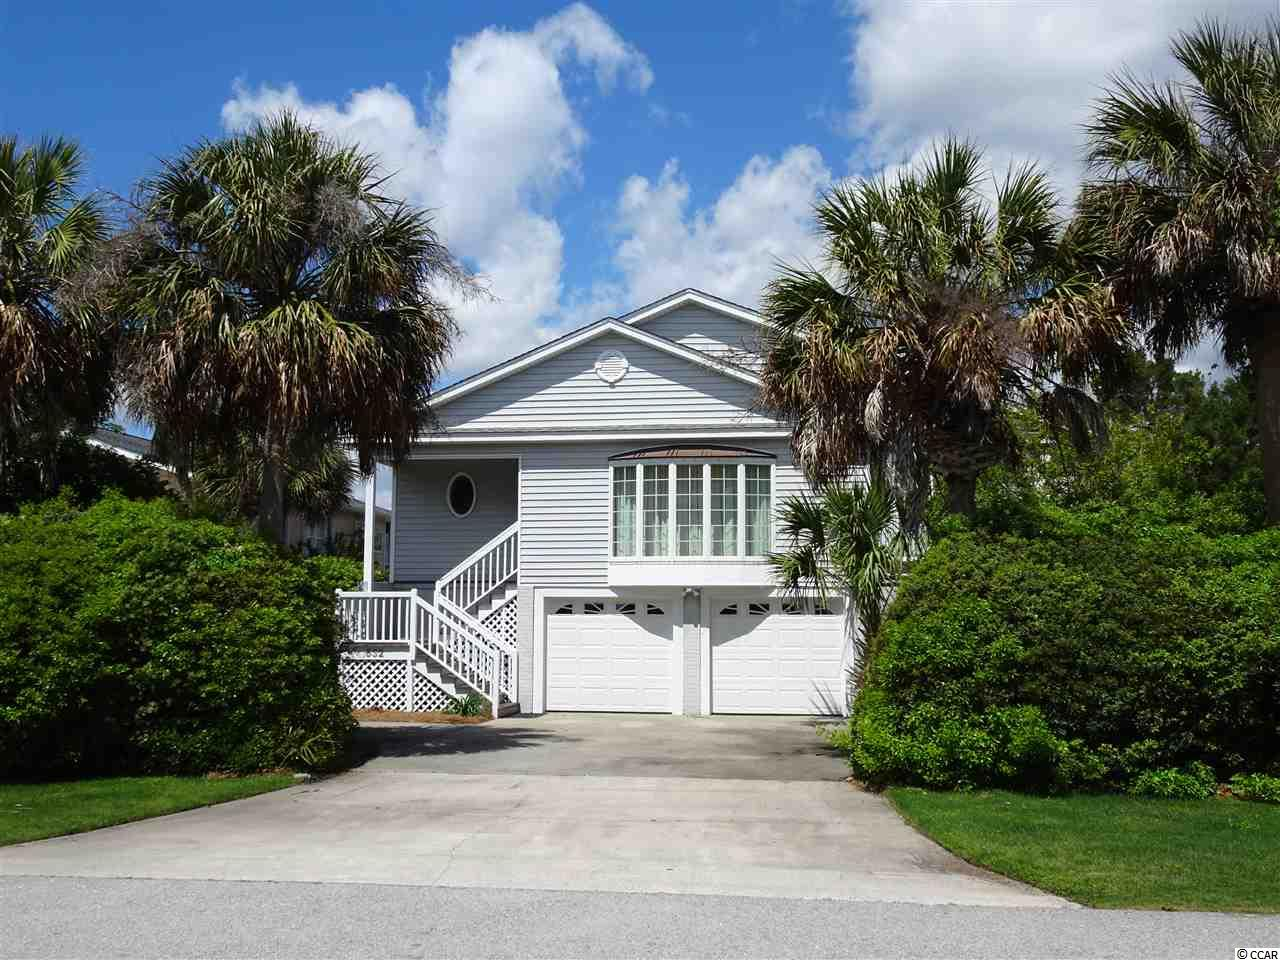 532 Sundial Dr., Pawleys Island, South Carolina